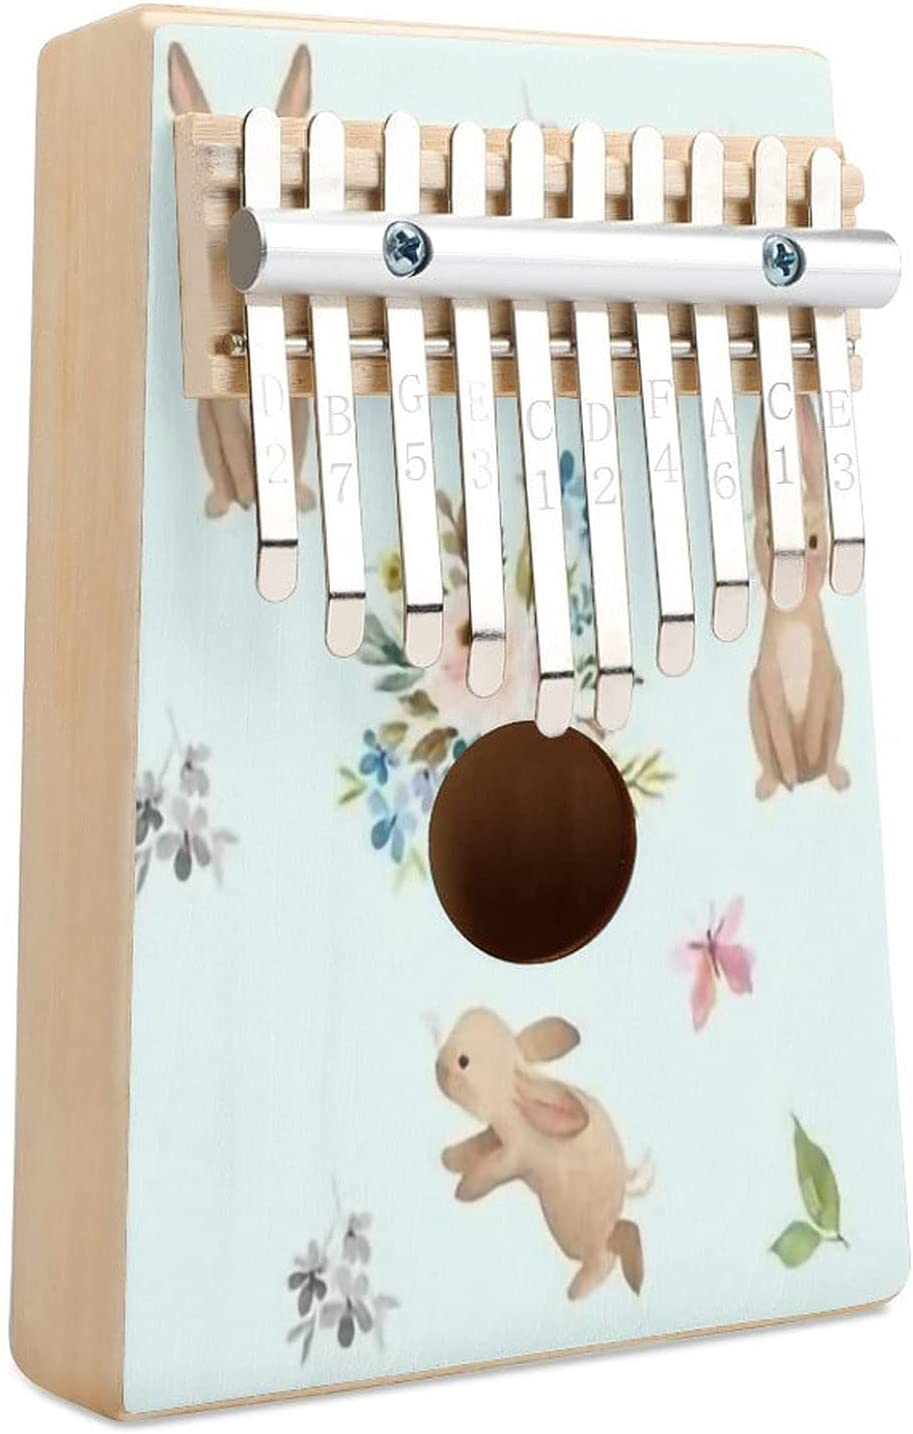 Spring Time Fun Selling and selling Bunnies Blue Kalimba P Finger 10 Thumb Key Raleigh Mall Piano